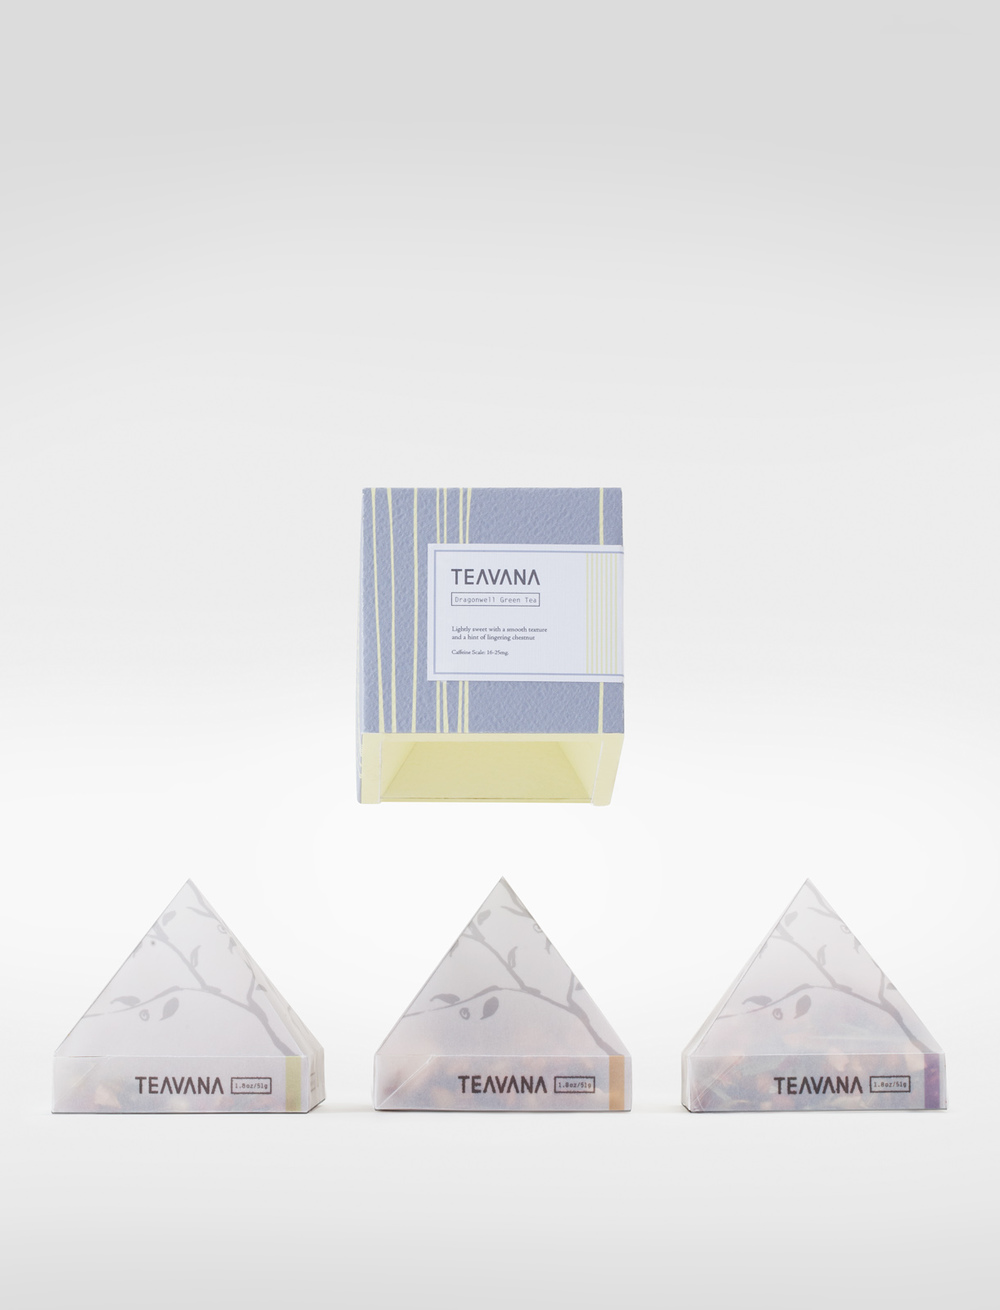 Teavana Spec packaging by Cindy Hu